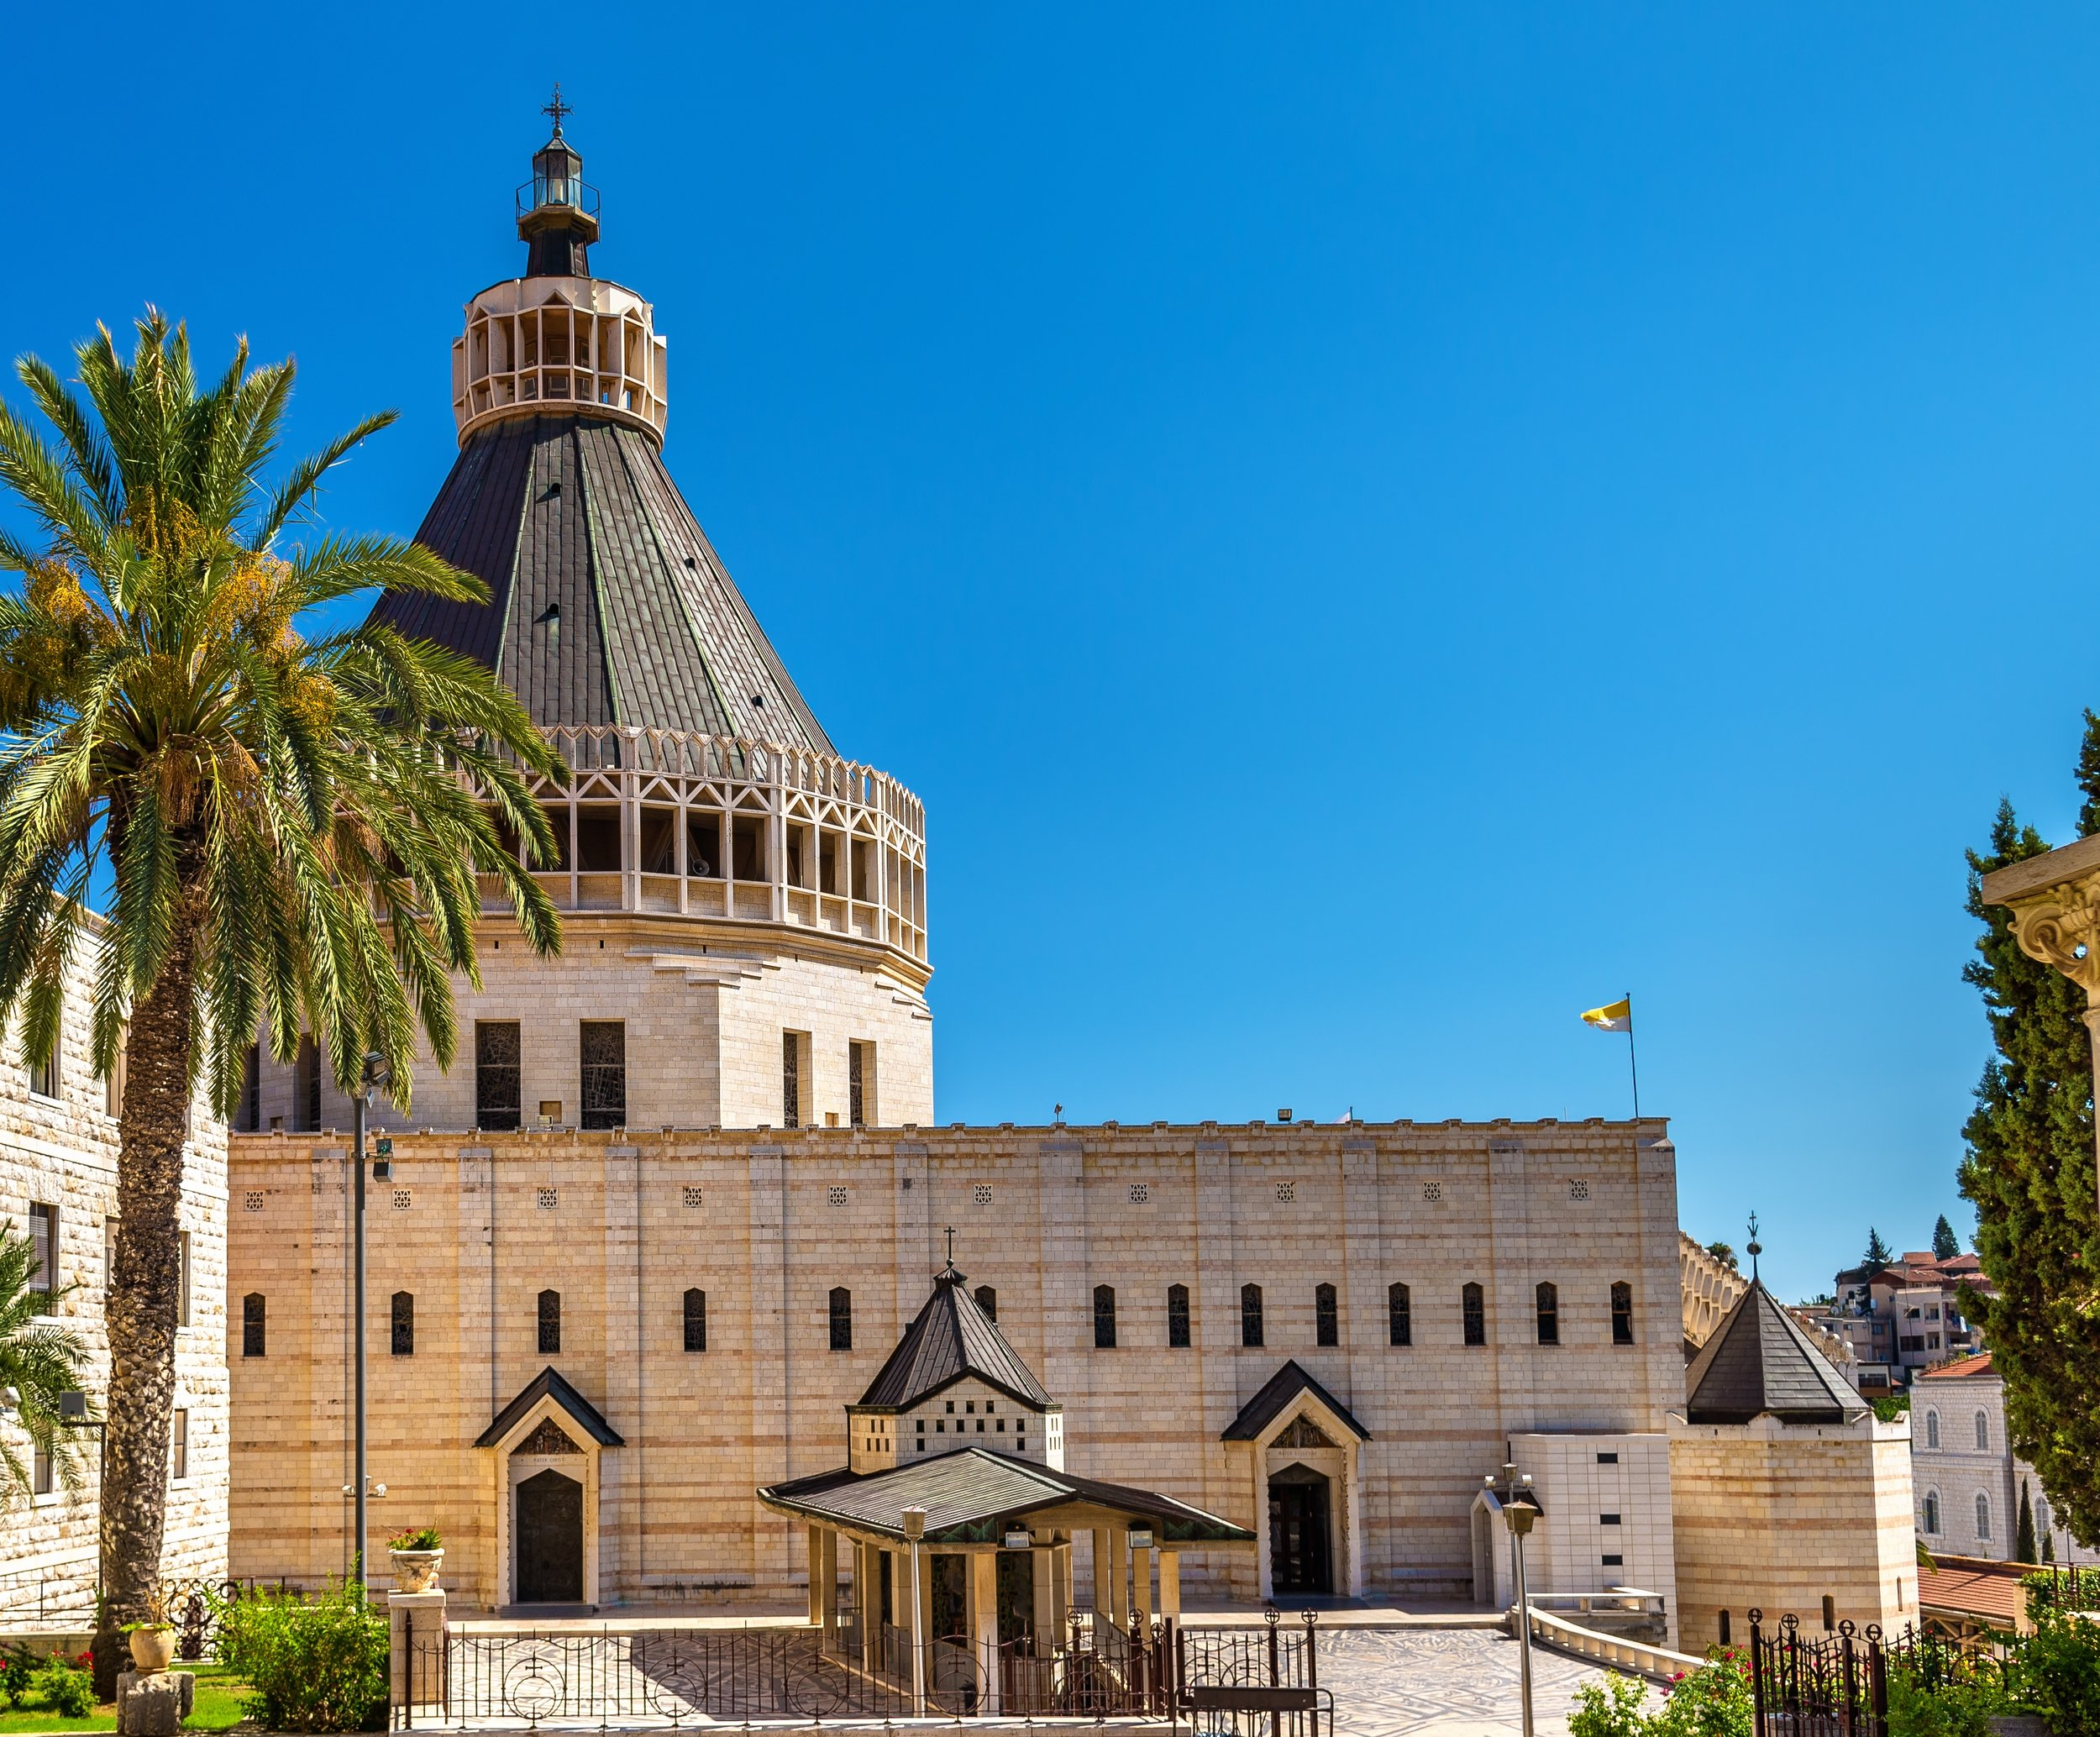 The Basilica of the Annunciation in Nazareth is built on the site traditionally understood to be the home of Mary. It is just one of many places you will visit on the Holy Land Pilgrimage.